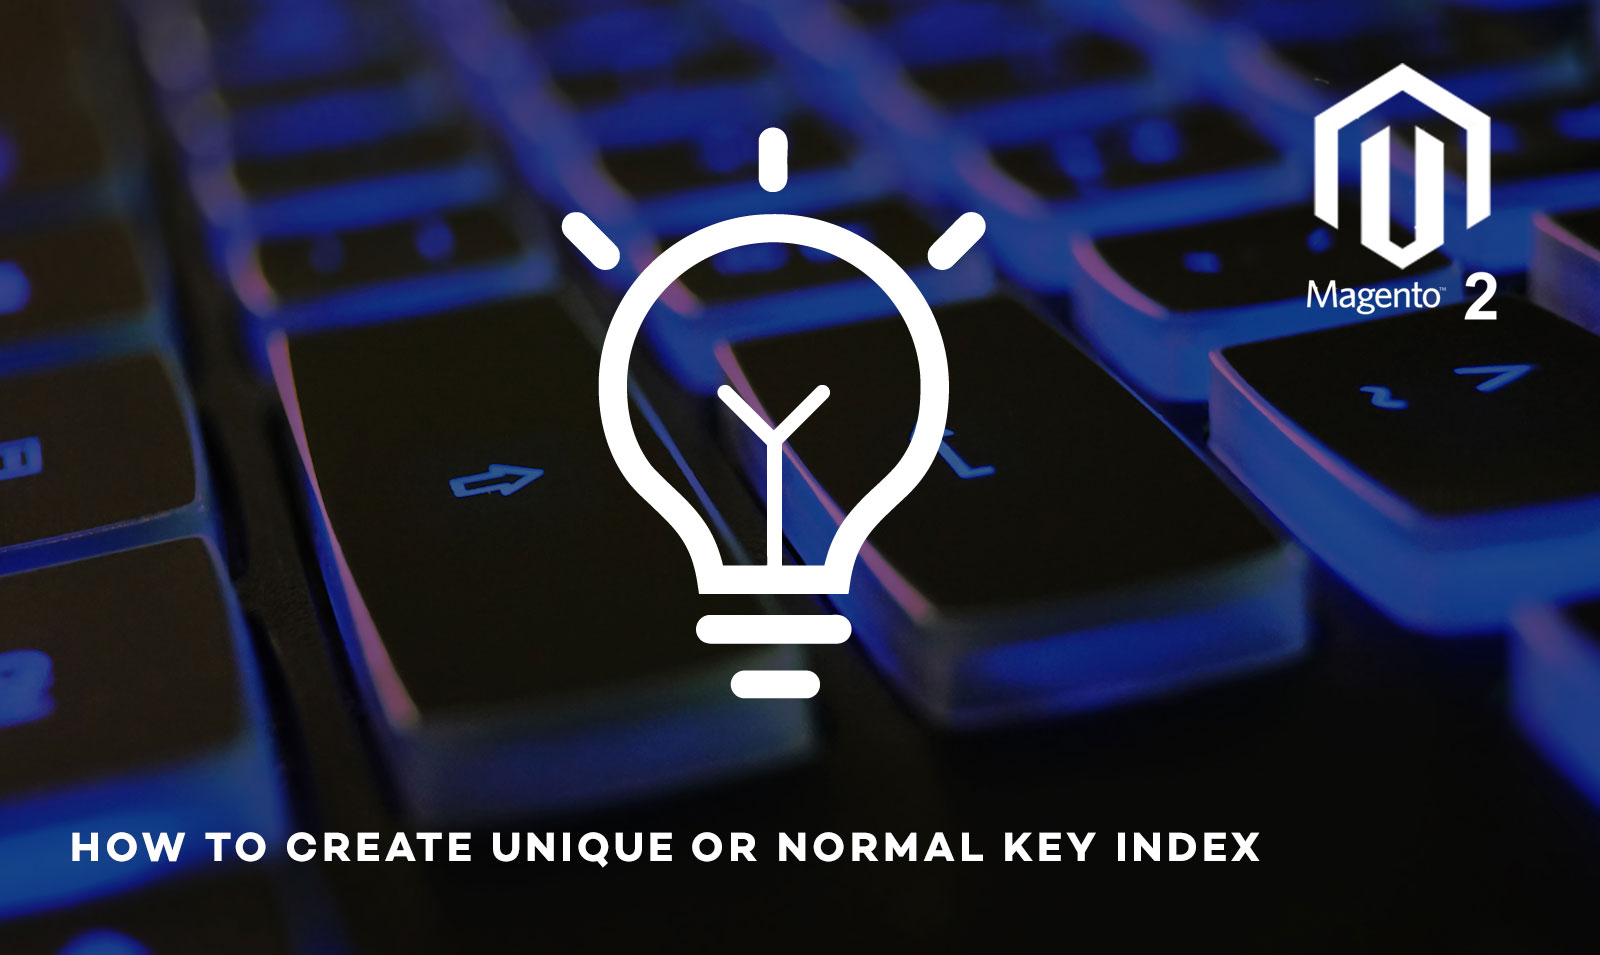 how to create unique or normal key index in magento 2